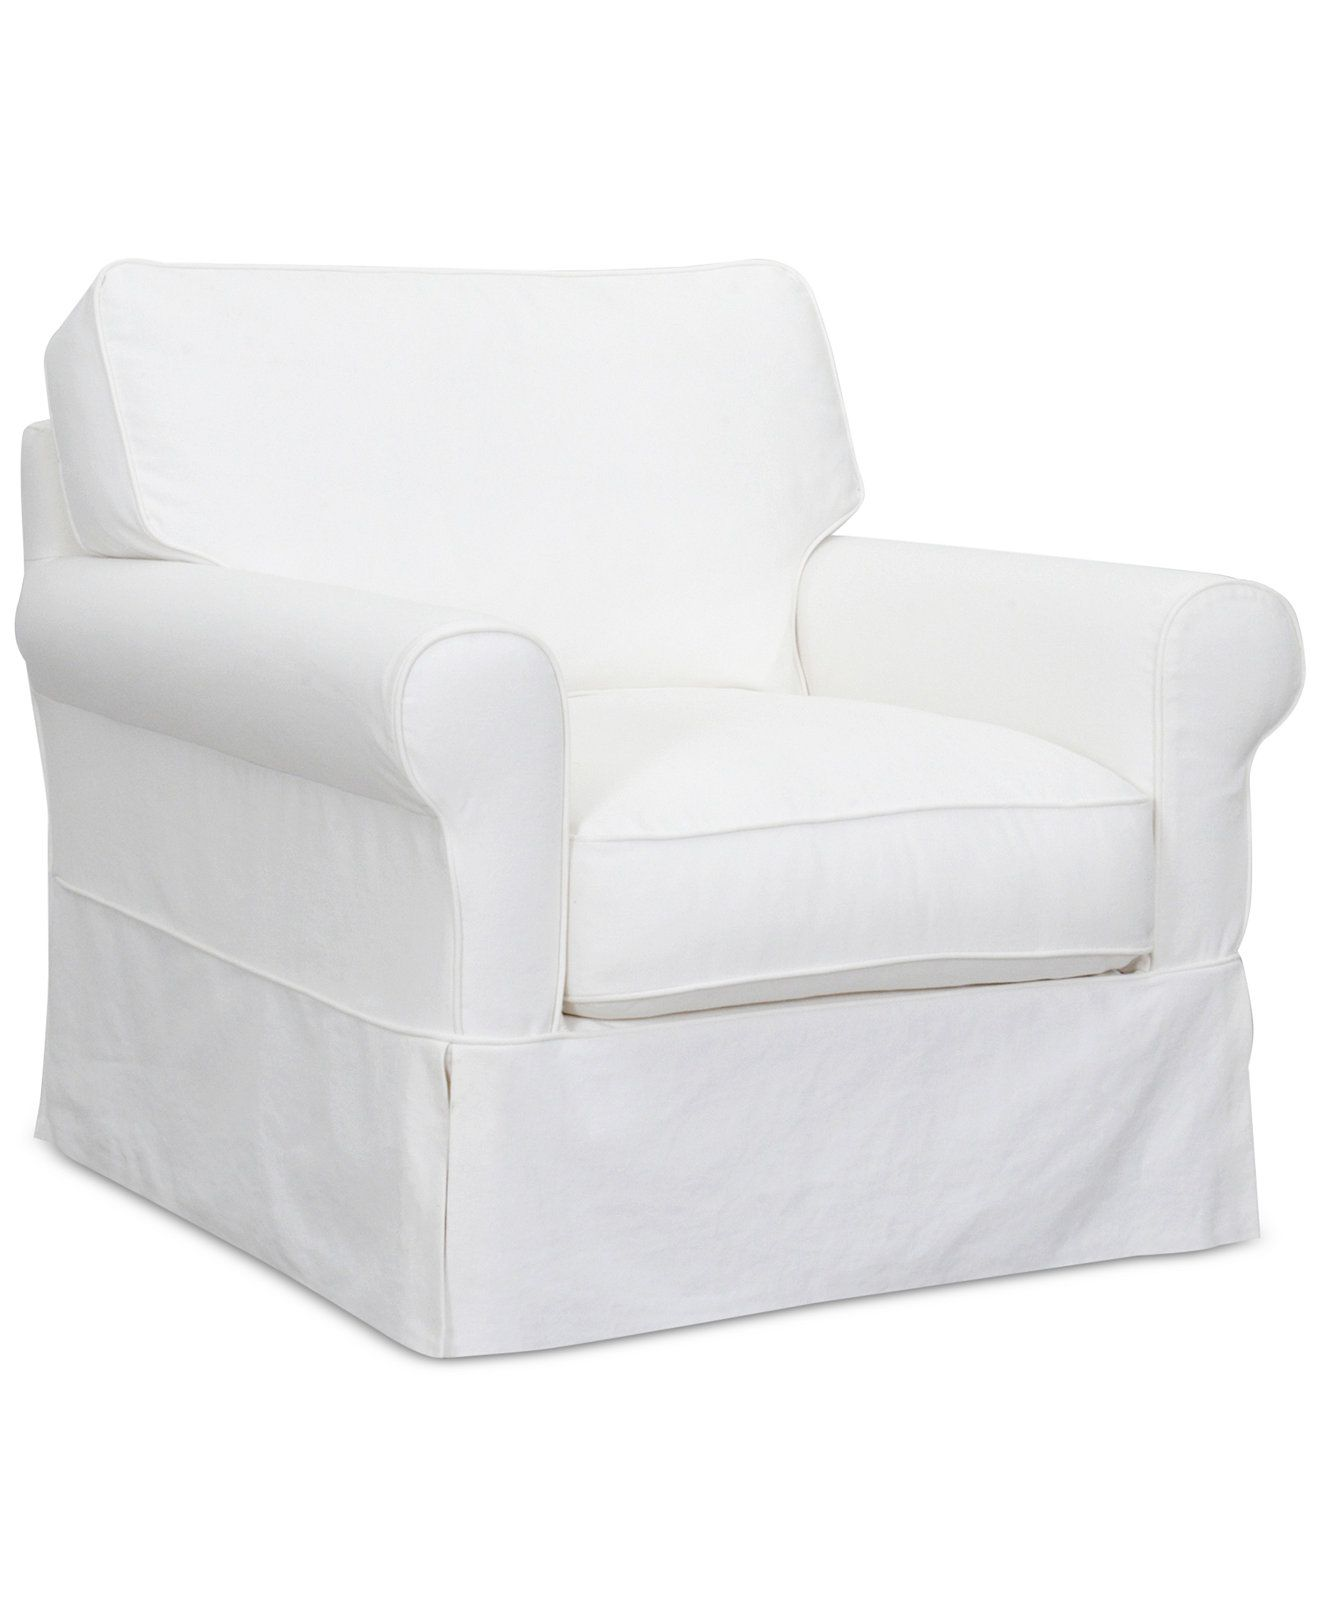 Leanne Fabric Slipcover Chair Chairs & Recliners Furniture